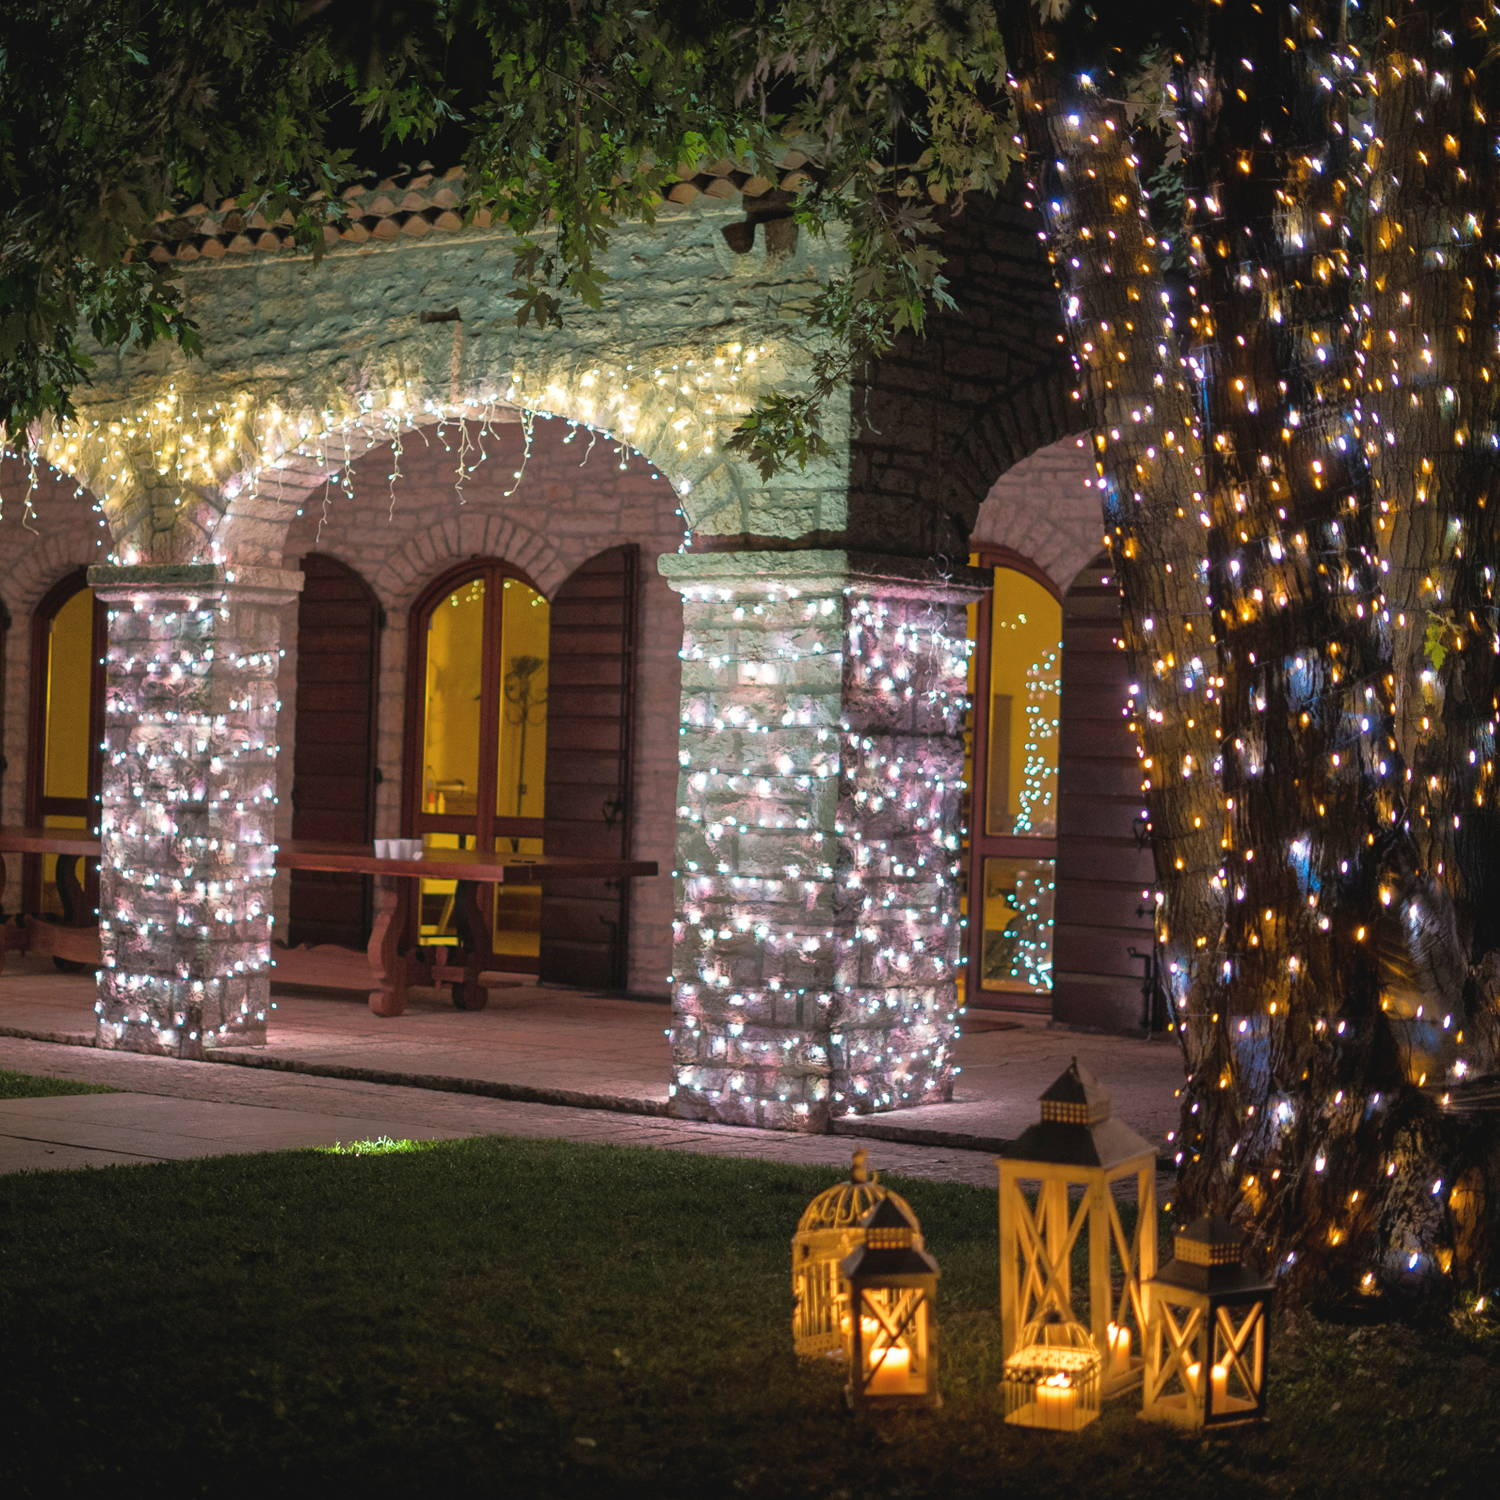 Gold edition Twinkly string lighting displayed outside home with illuminated outdoor lanterns